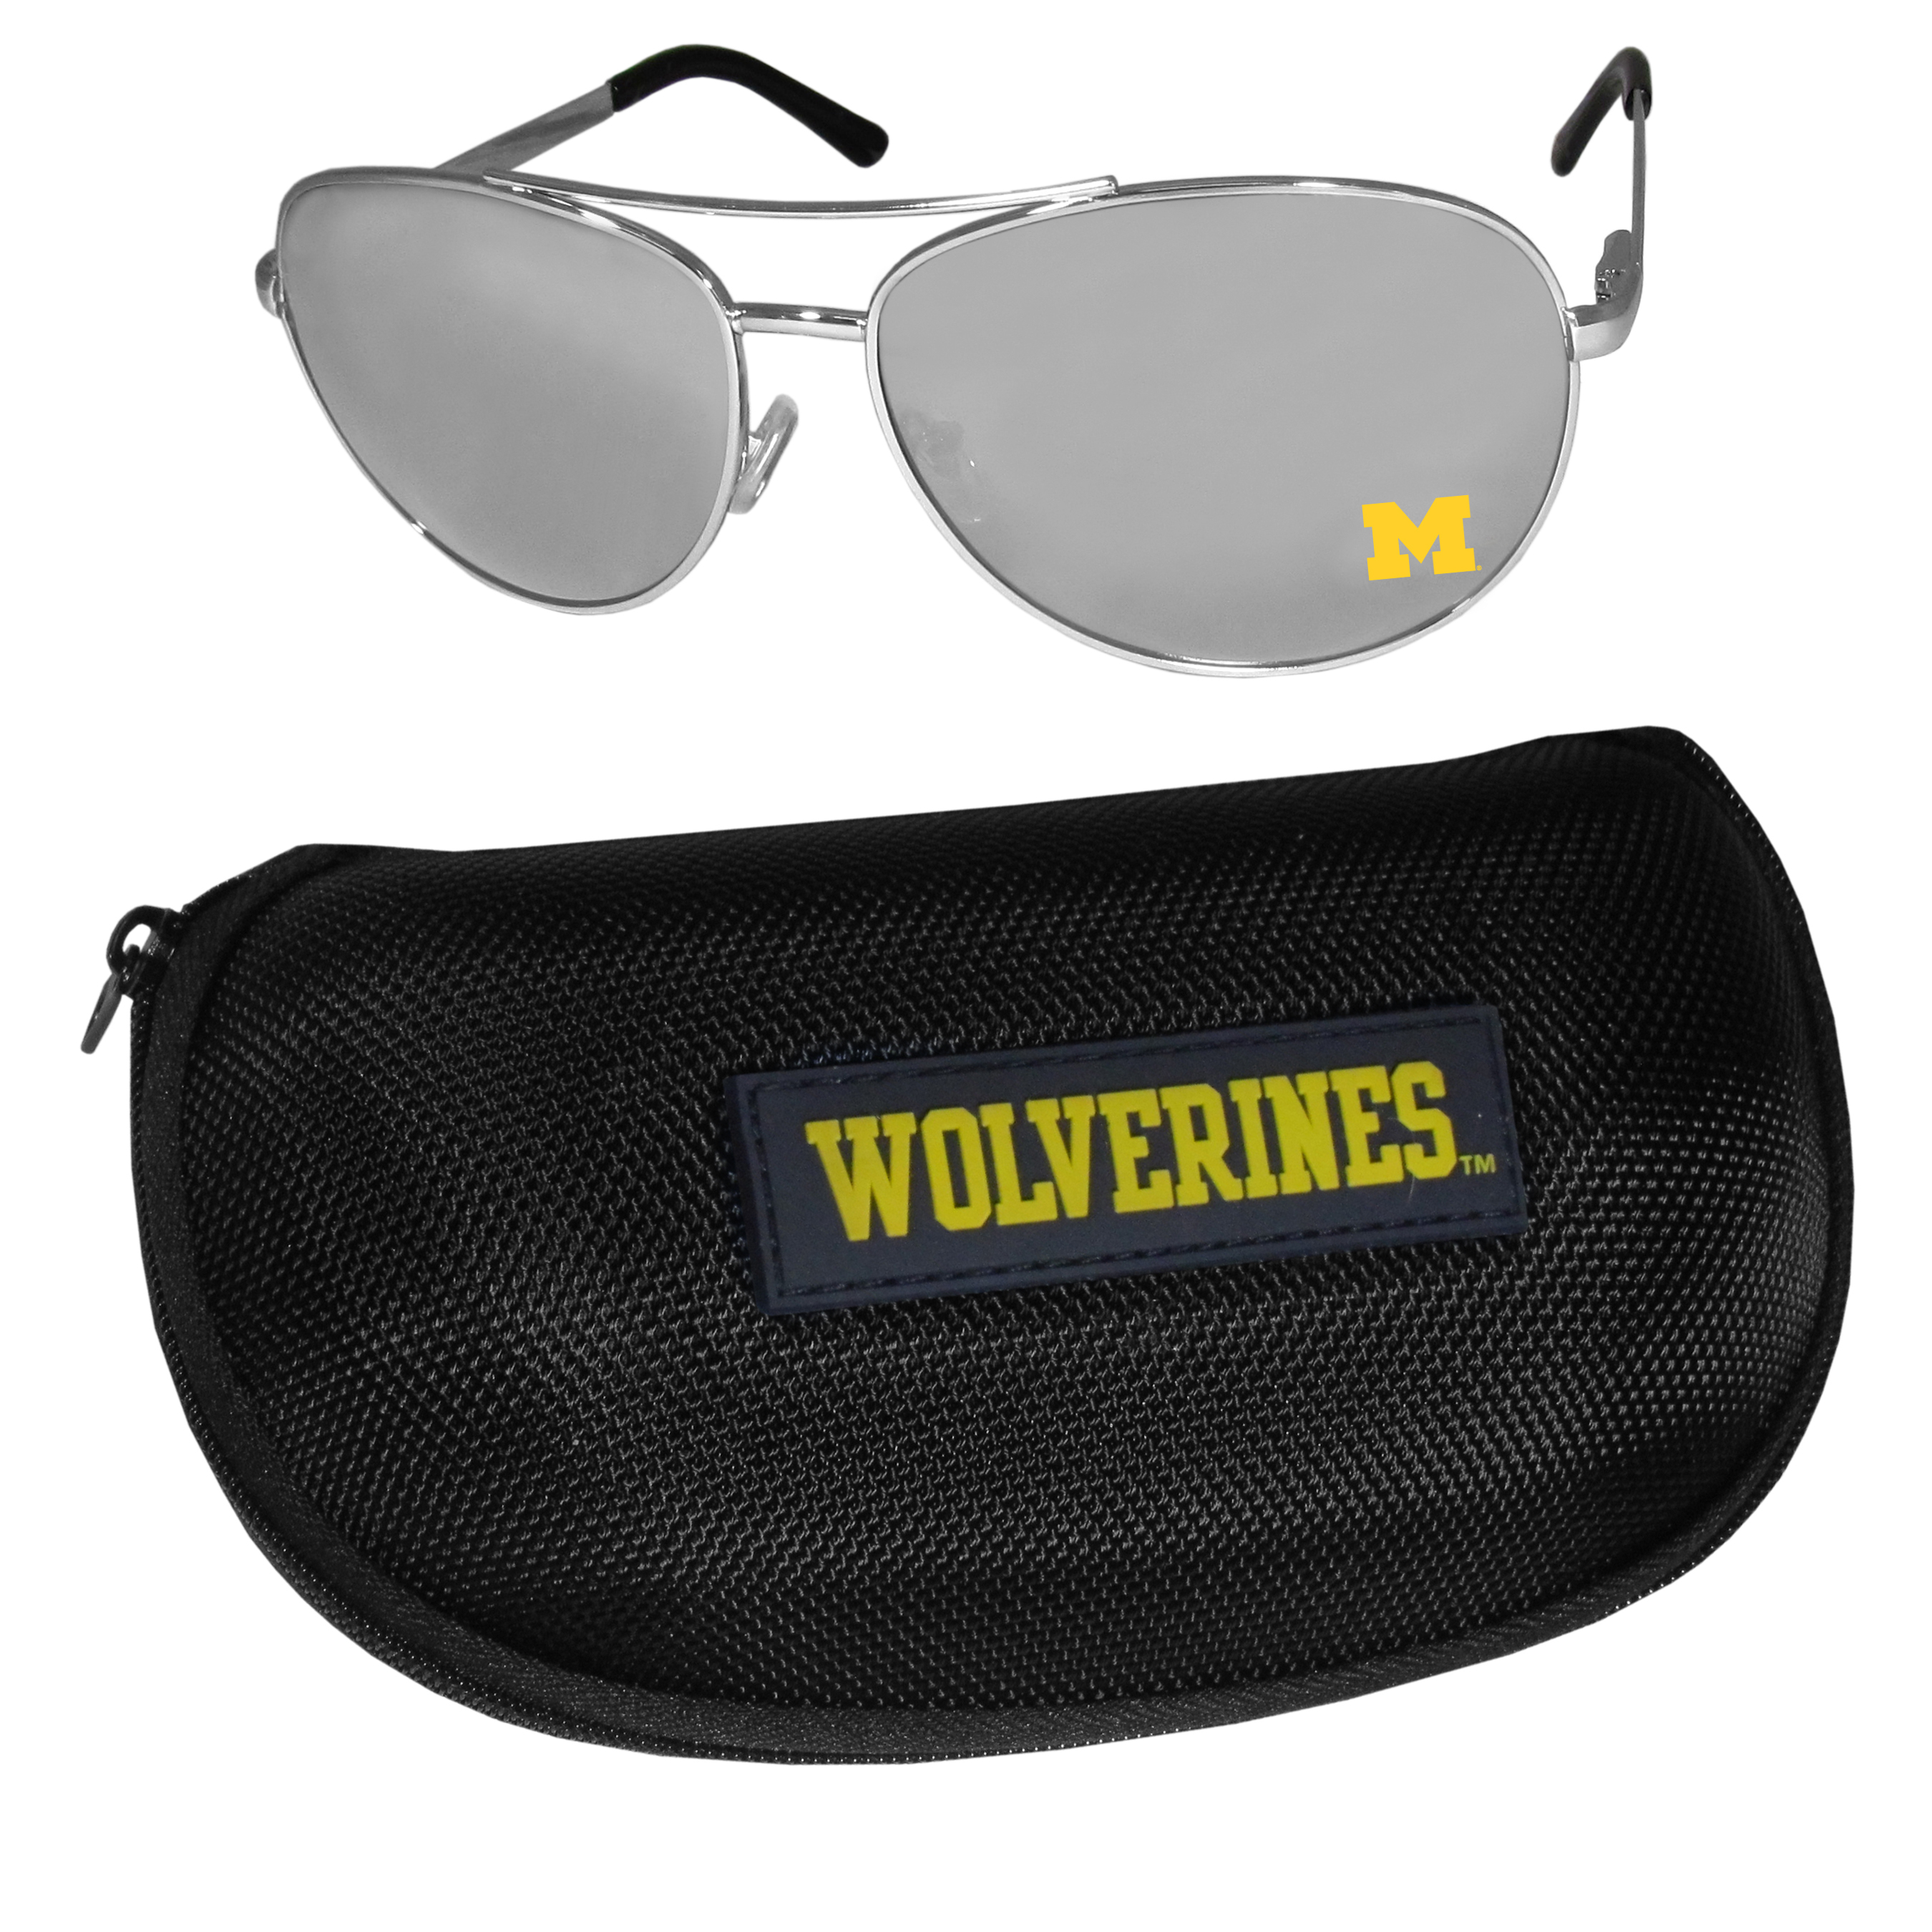 Michigan Wolverines Aviator Sunglasses and Zippered Carrying Case - Aviator sunglasses are truly an iconic retro fashion statement that never goes out-of-style. Our Michigan Wolverines  aviator sunglasses pair this classic look with your love of the game. The iridium coated lenses reduce glare while driving, boating, golfing and their 100% UVA/UVB rating provides you with the maximum UV protection for all your outdoor activities. A millennial favorite, these affordable designer frames are the perfect eyewear accessory for a sports fan that is looking for high-quality at an affordable price. The durable, flex hinged frames are tough enough for hiking and camping or if you prefer sun bathing by the pool or on the beach these shades will really stand the test of time. The sunglasses come with a hard shell zippered case which has a large team logo on the lid that will make even the most die-hard fan proud!